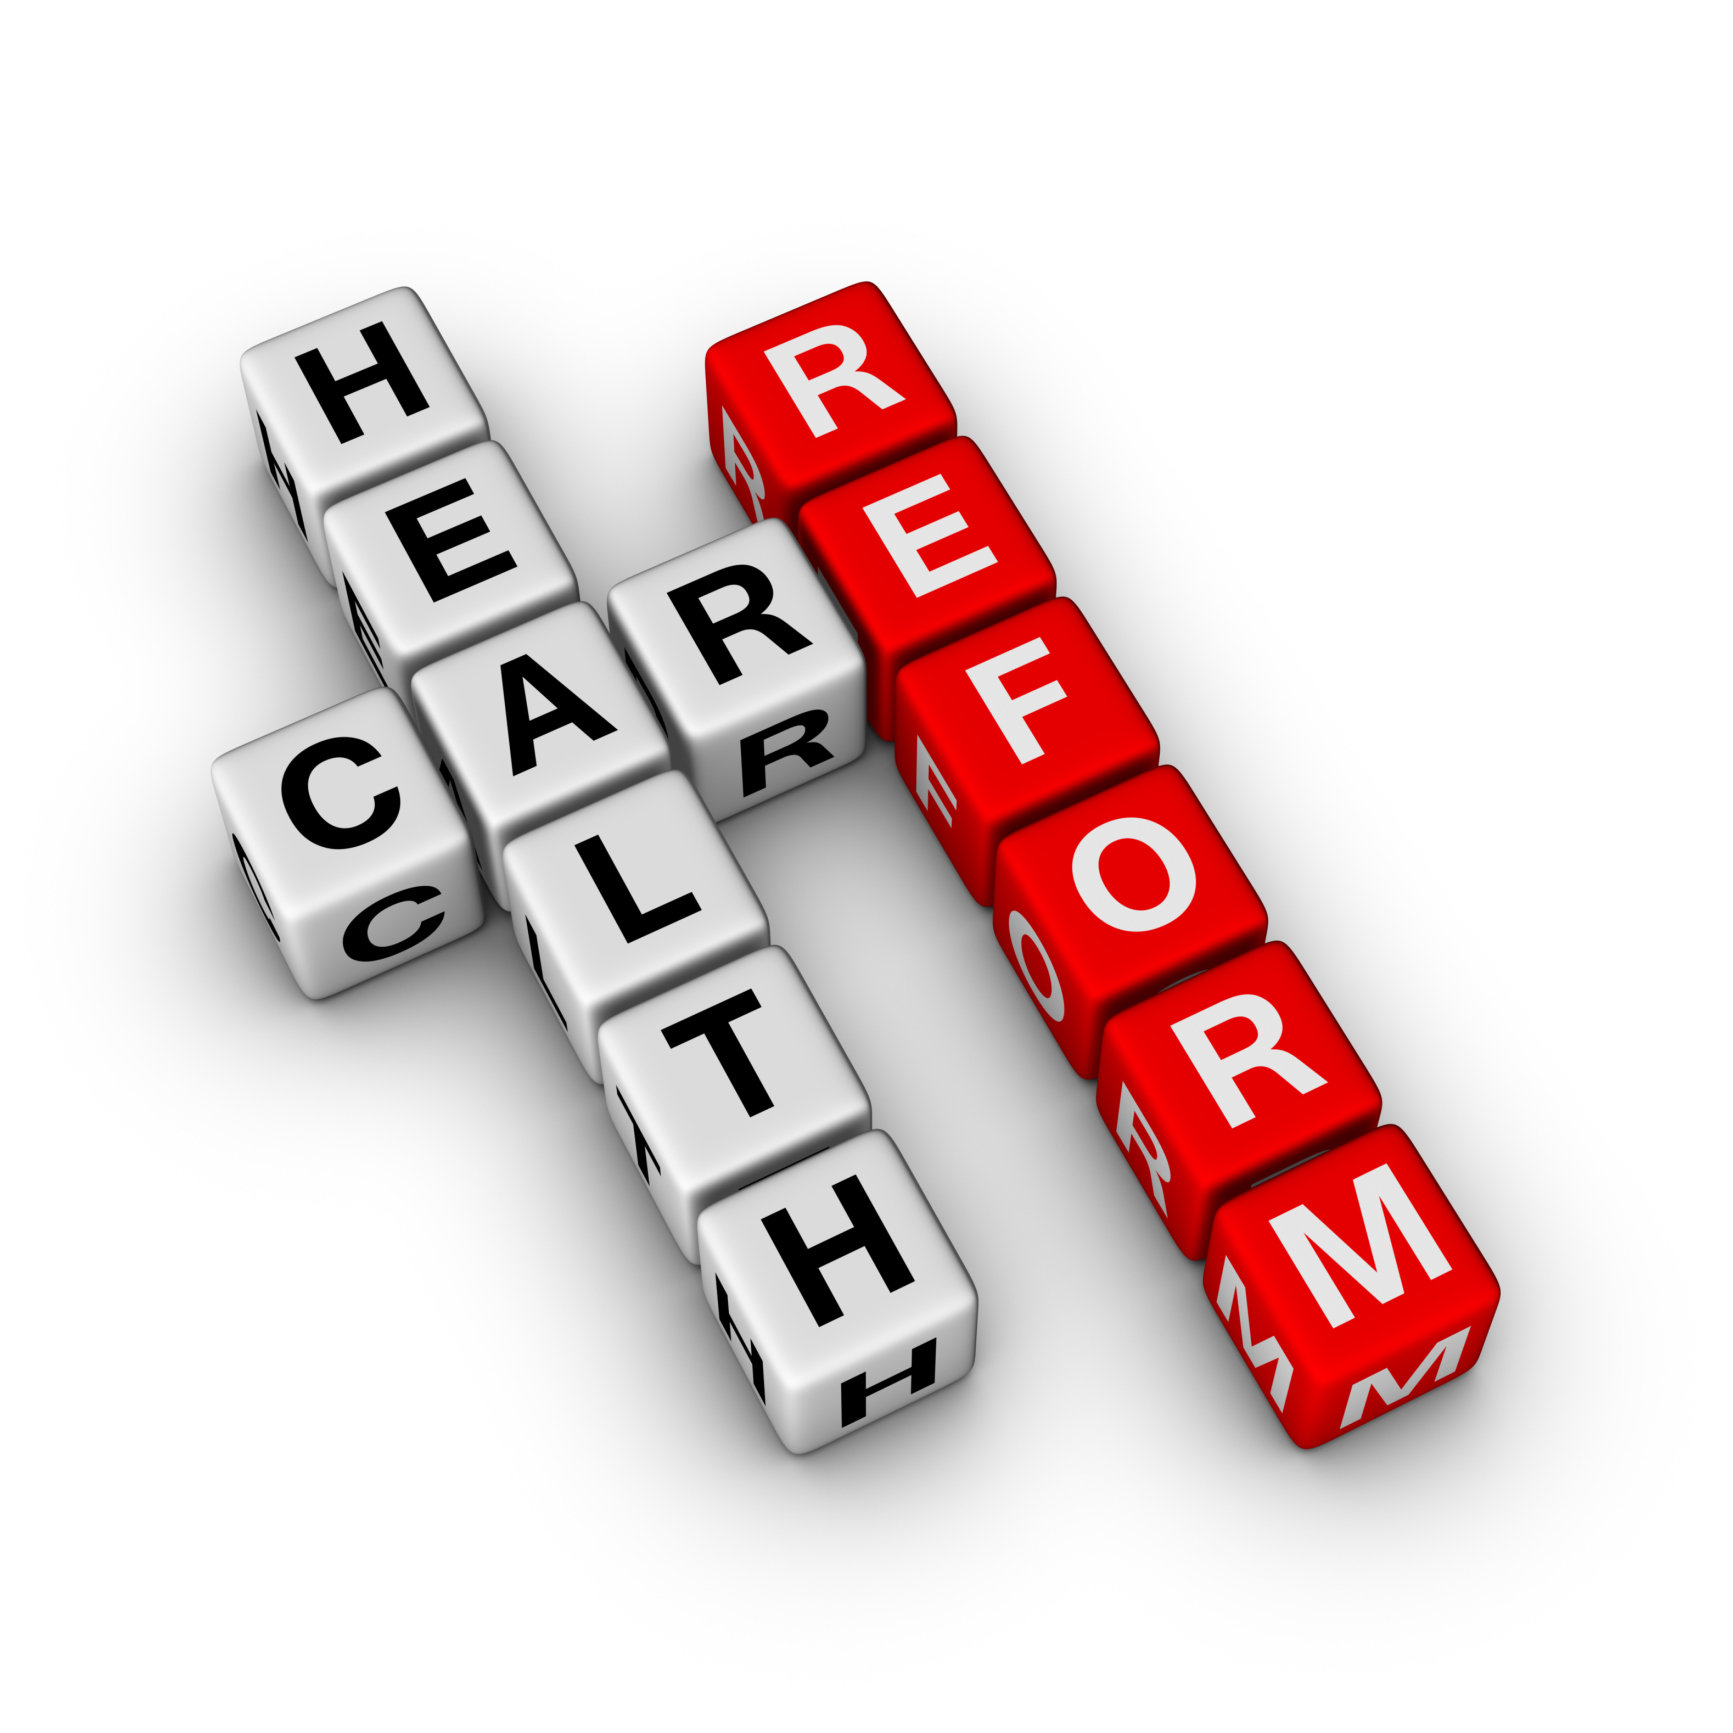 american struggle over health care reform Download remedy and reaction the peculiar american struggle over health care reform paul starr (pdf, epub, mobi) books remedy and reaction the peculiar american struggle over health care reform paul starr (pdf, epub, mobi.